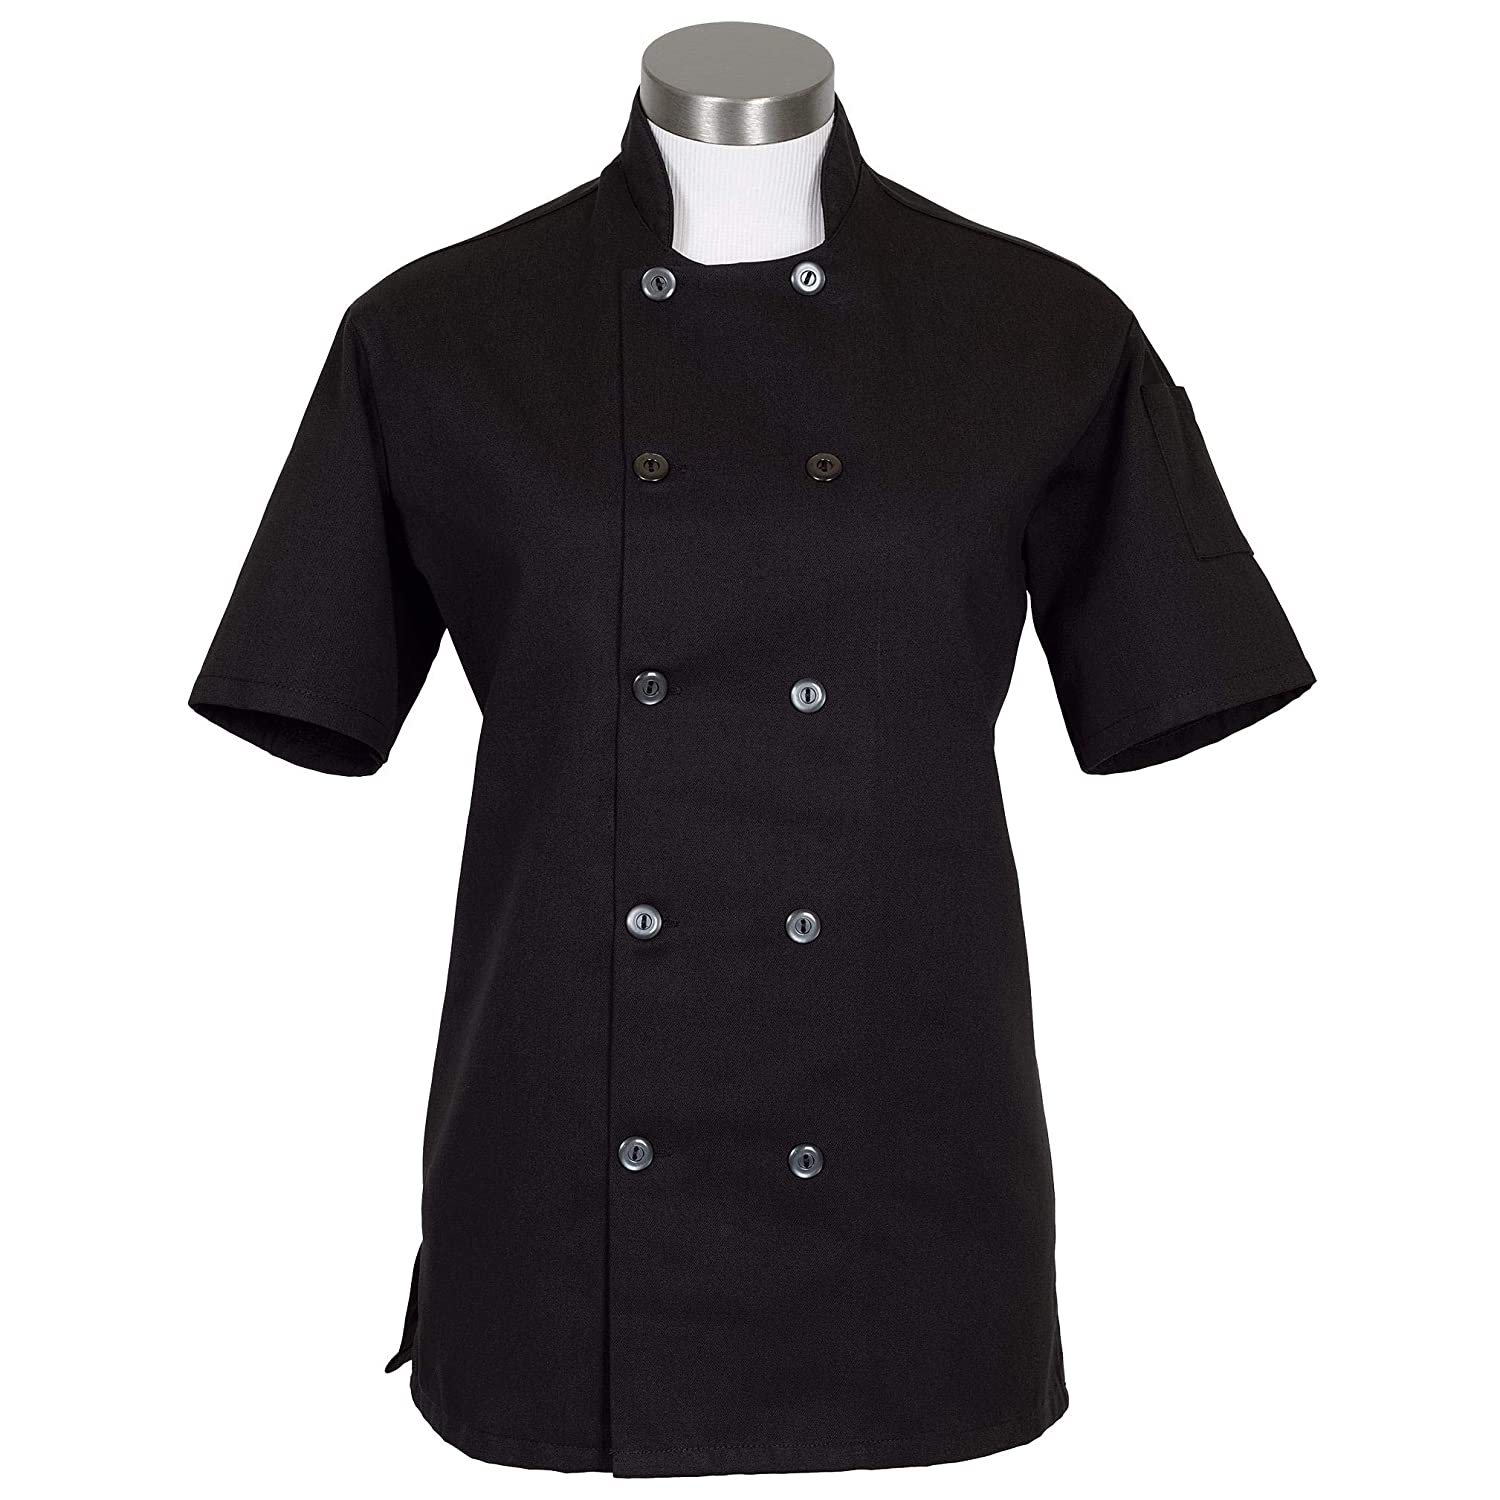 Fame Fabrics 83206 C100PS Short Sleeves, 10 Buttons Chef Coat, Women's Fit, Black, SM